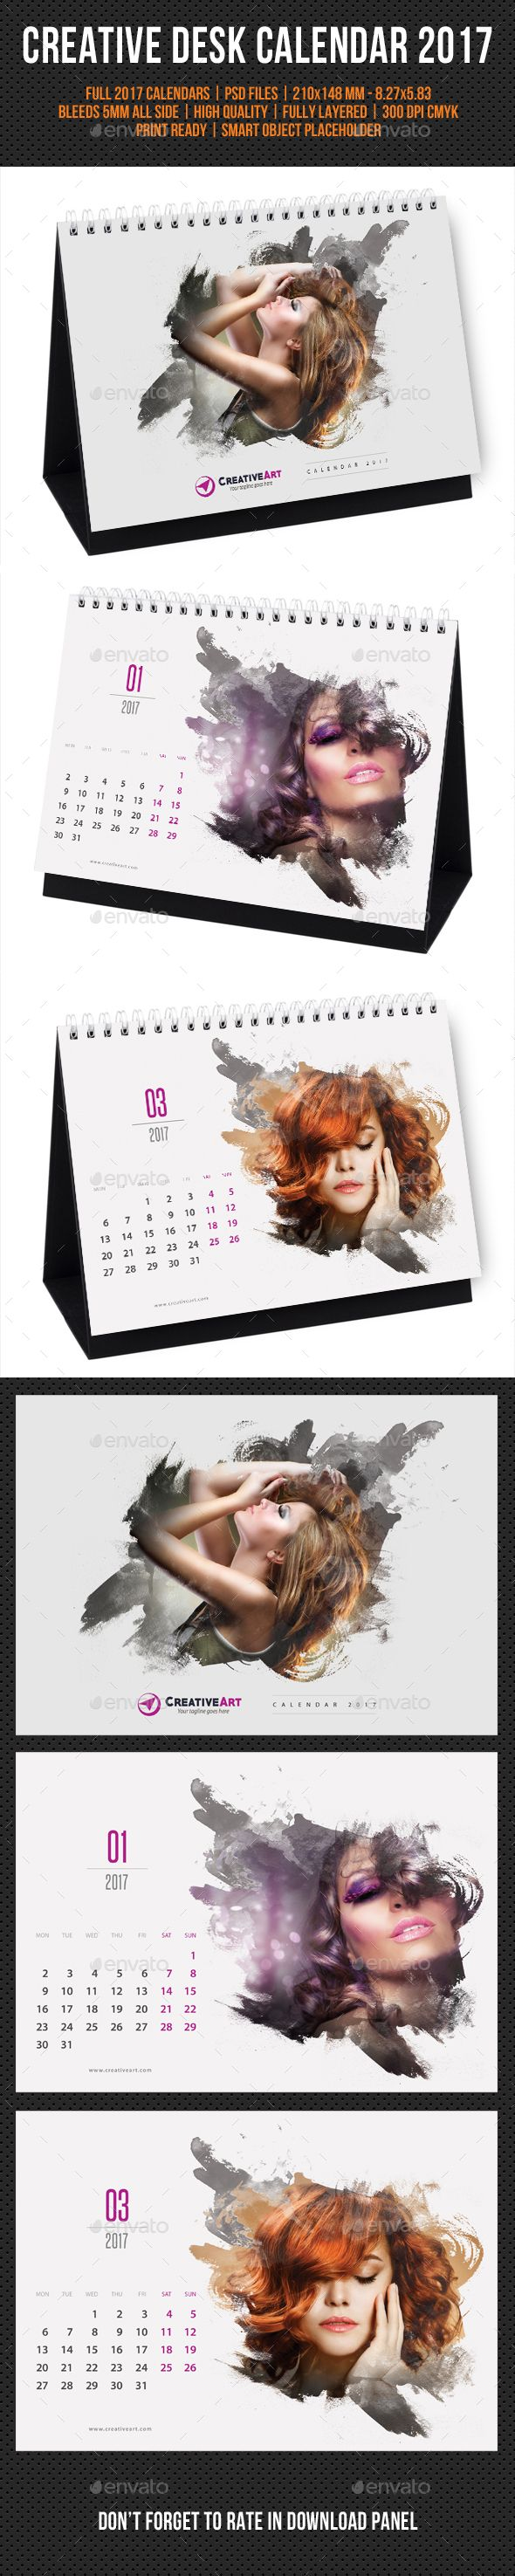 Creative Desk Calendar 2017 Template PSD. Download here: https://graphicriver.net/item/creative-desk-calendar-2017-v18/16957163?ref=ksioks